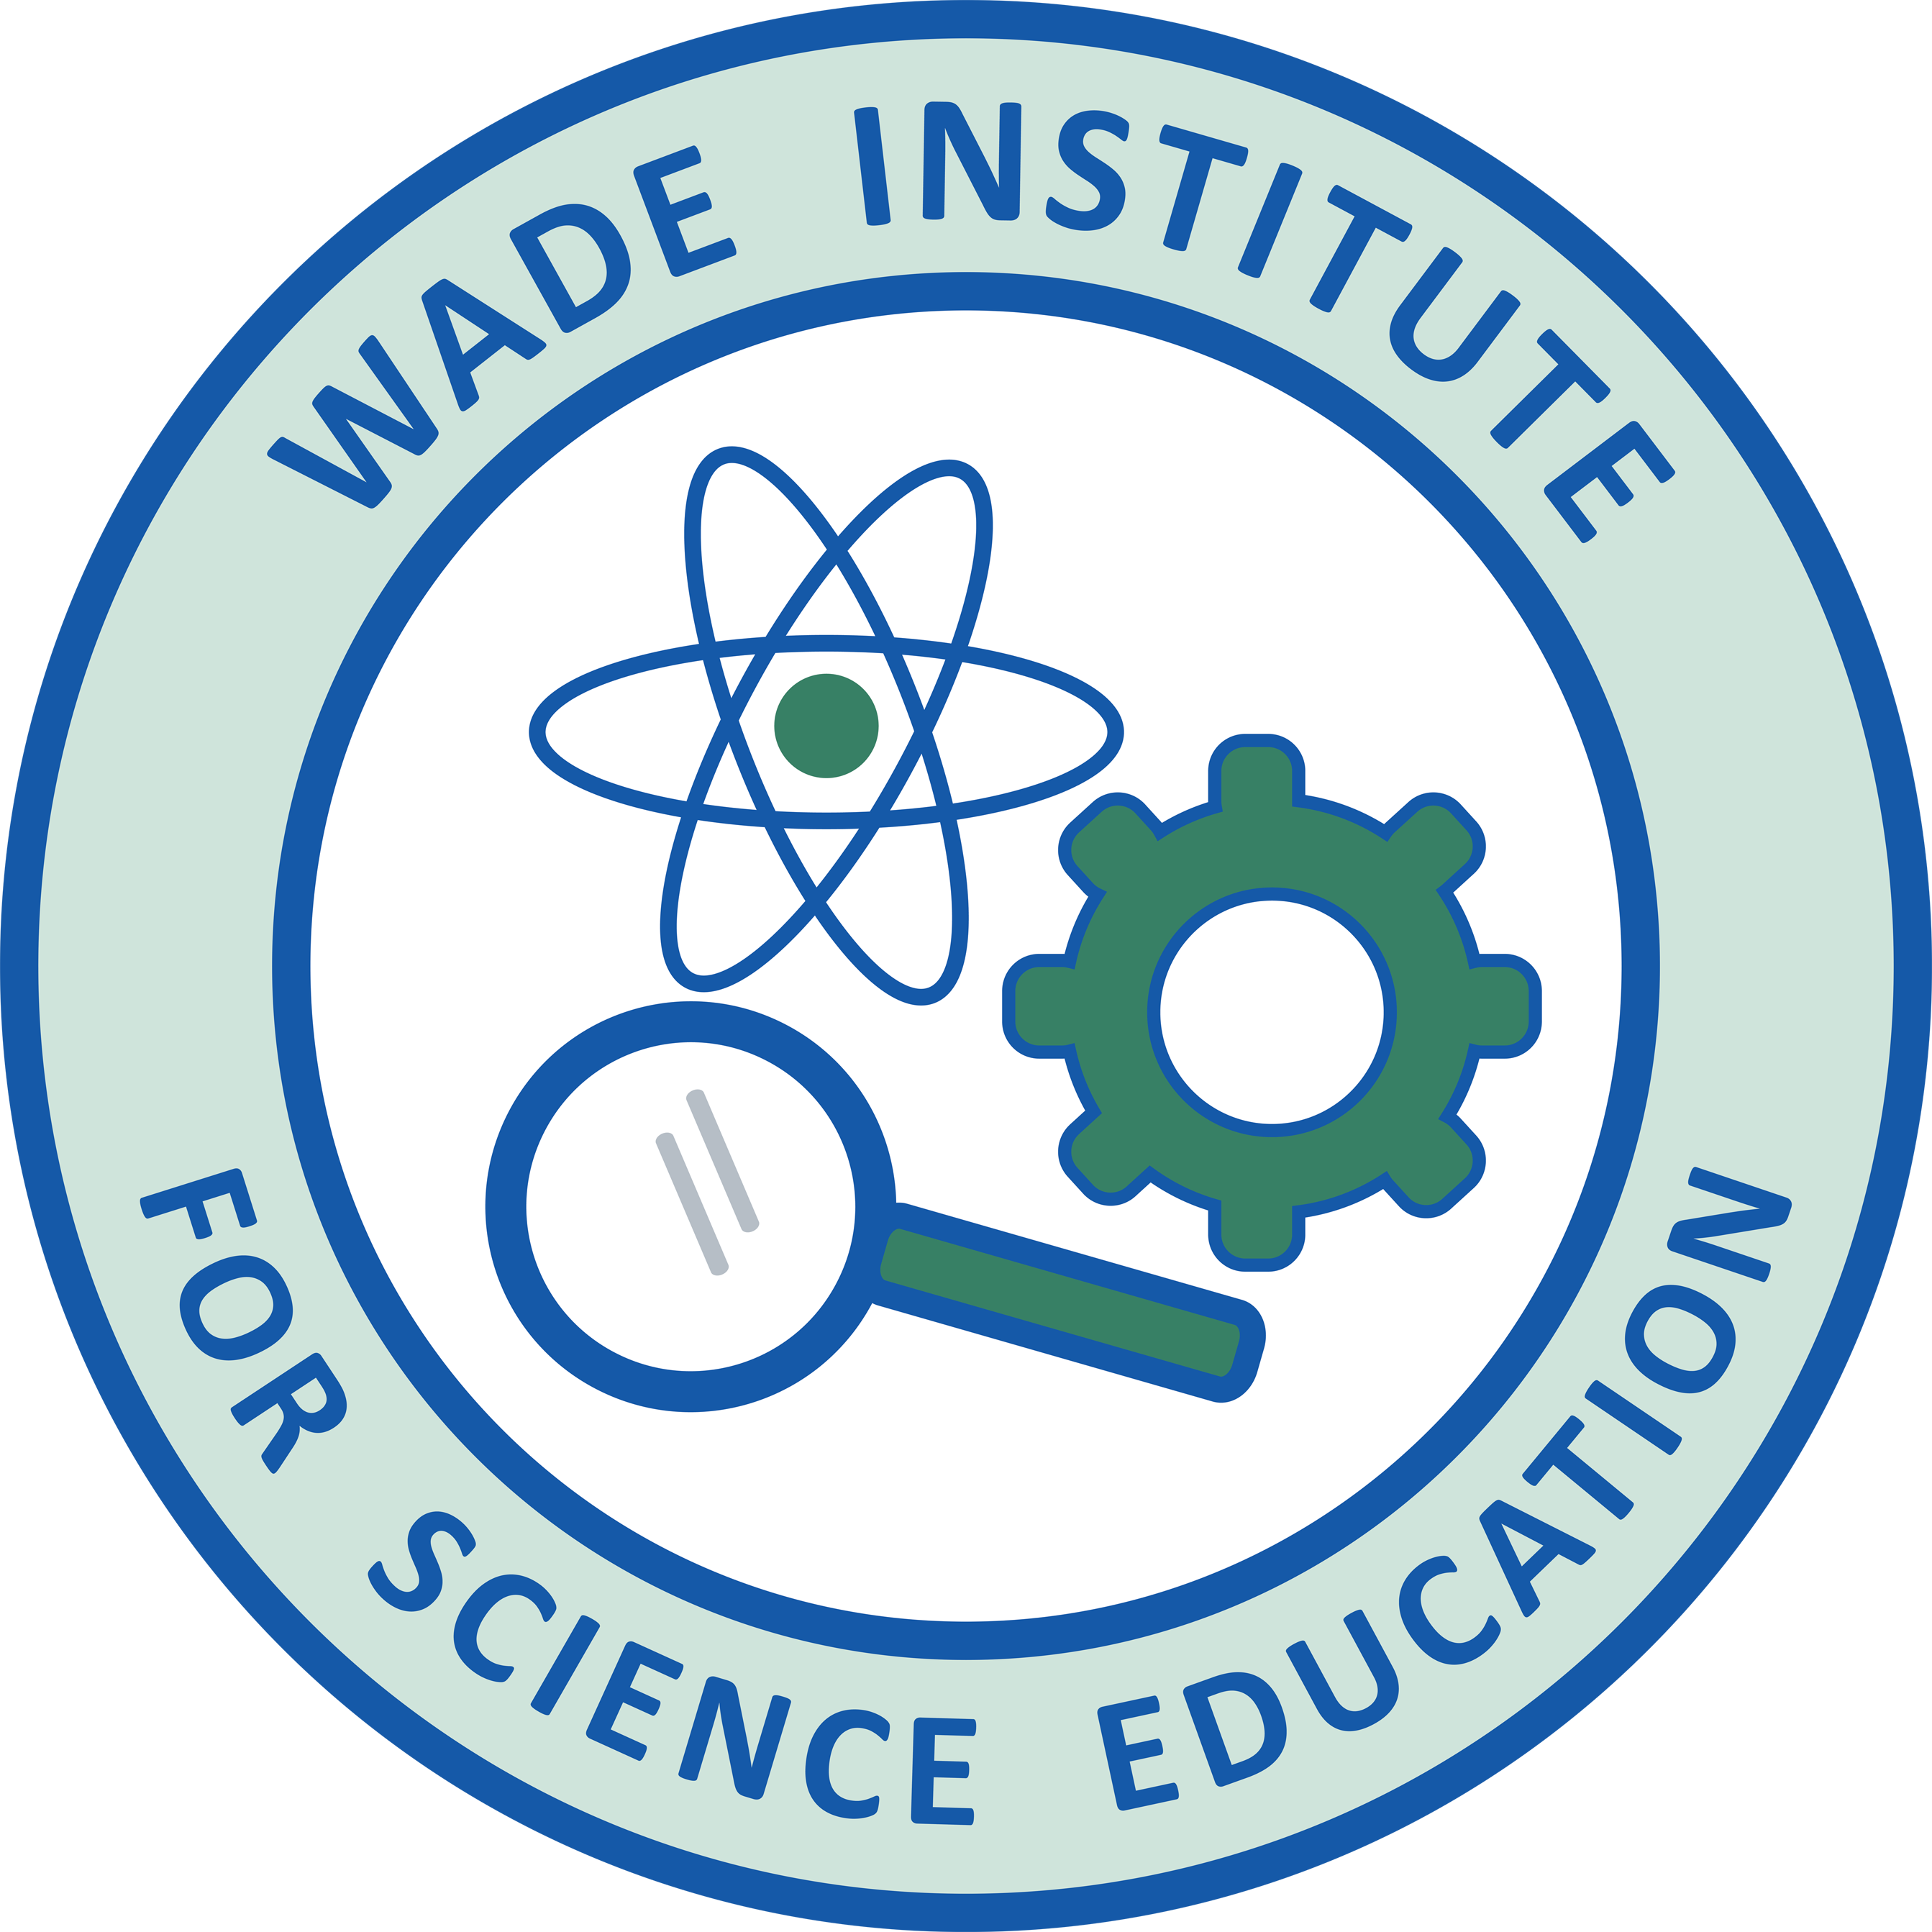 Logo of Wade Institute for Science Education (formerly MITS, Inc.)